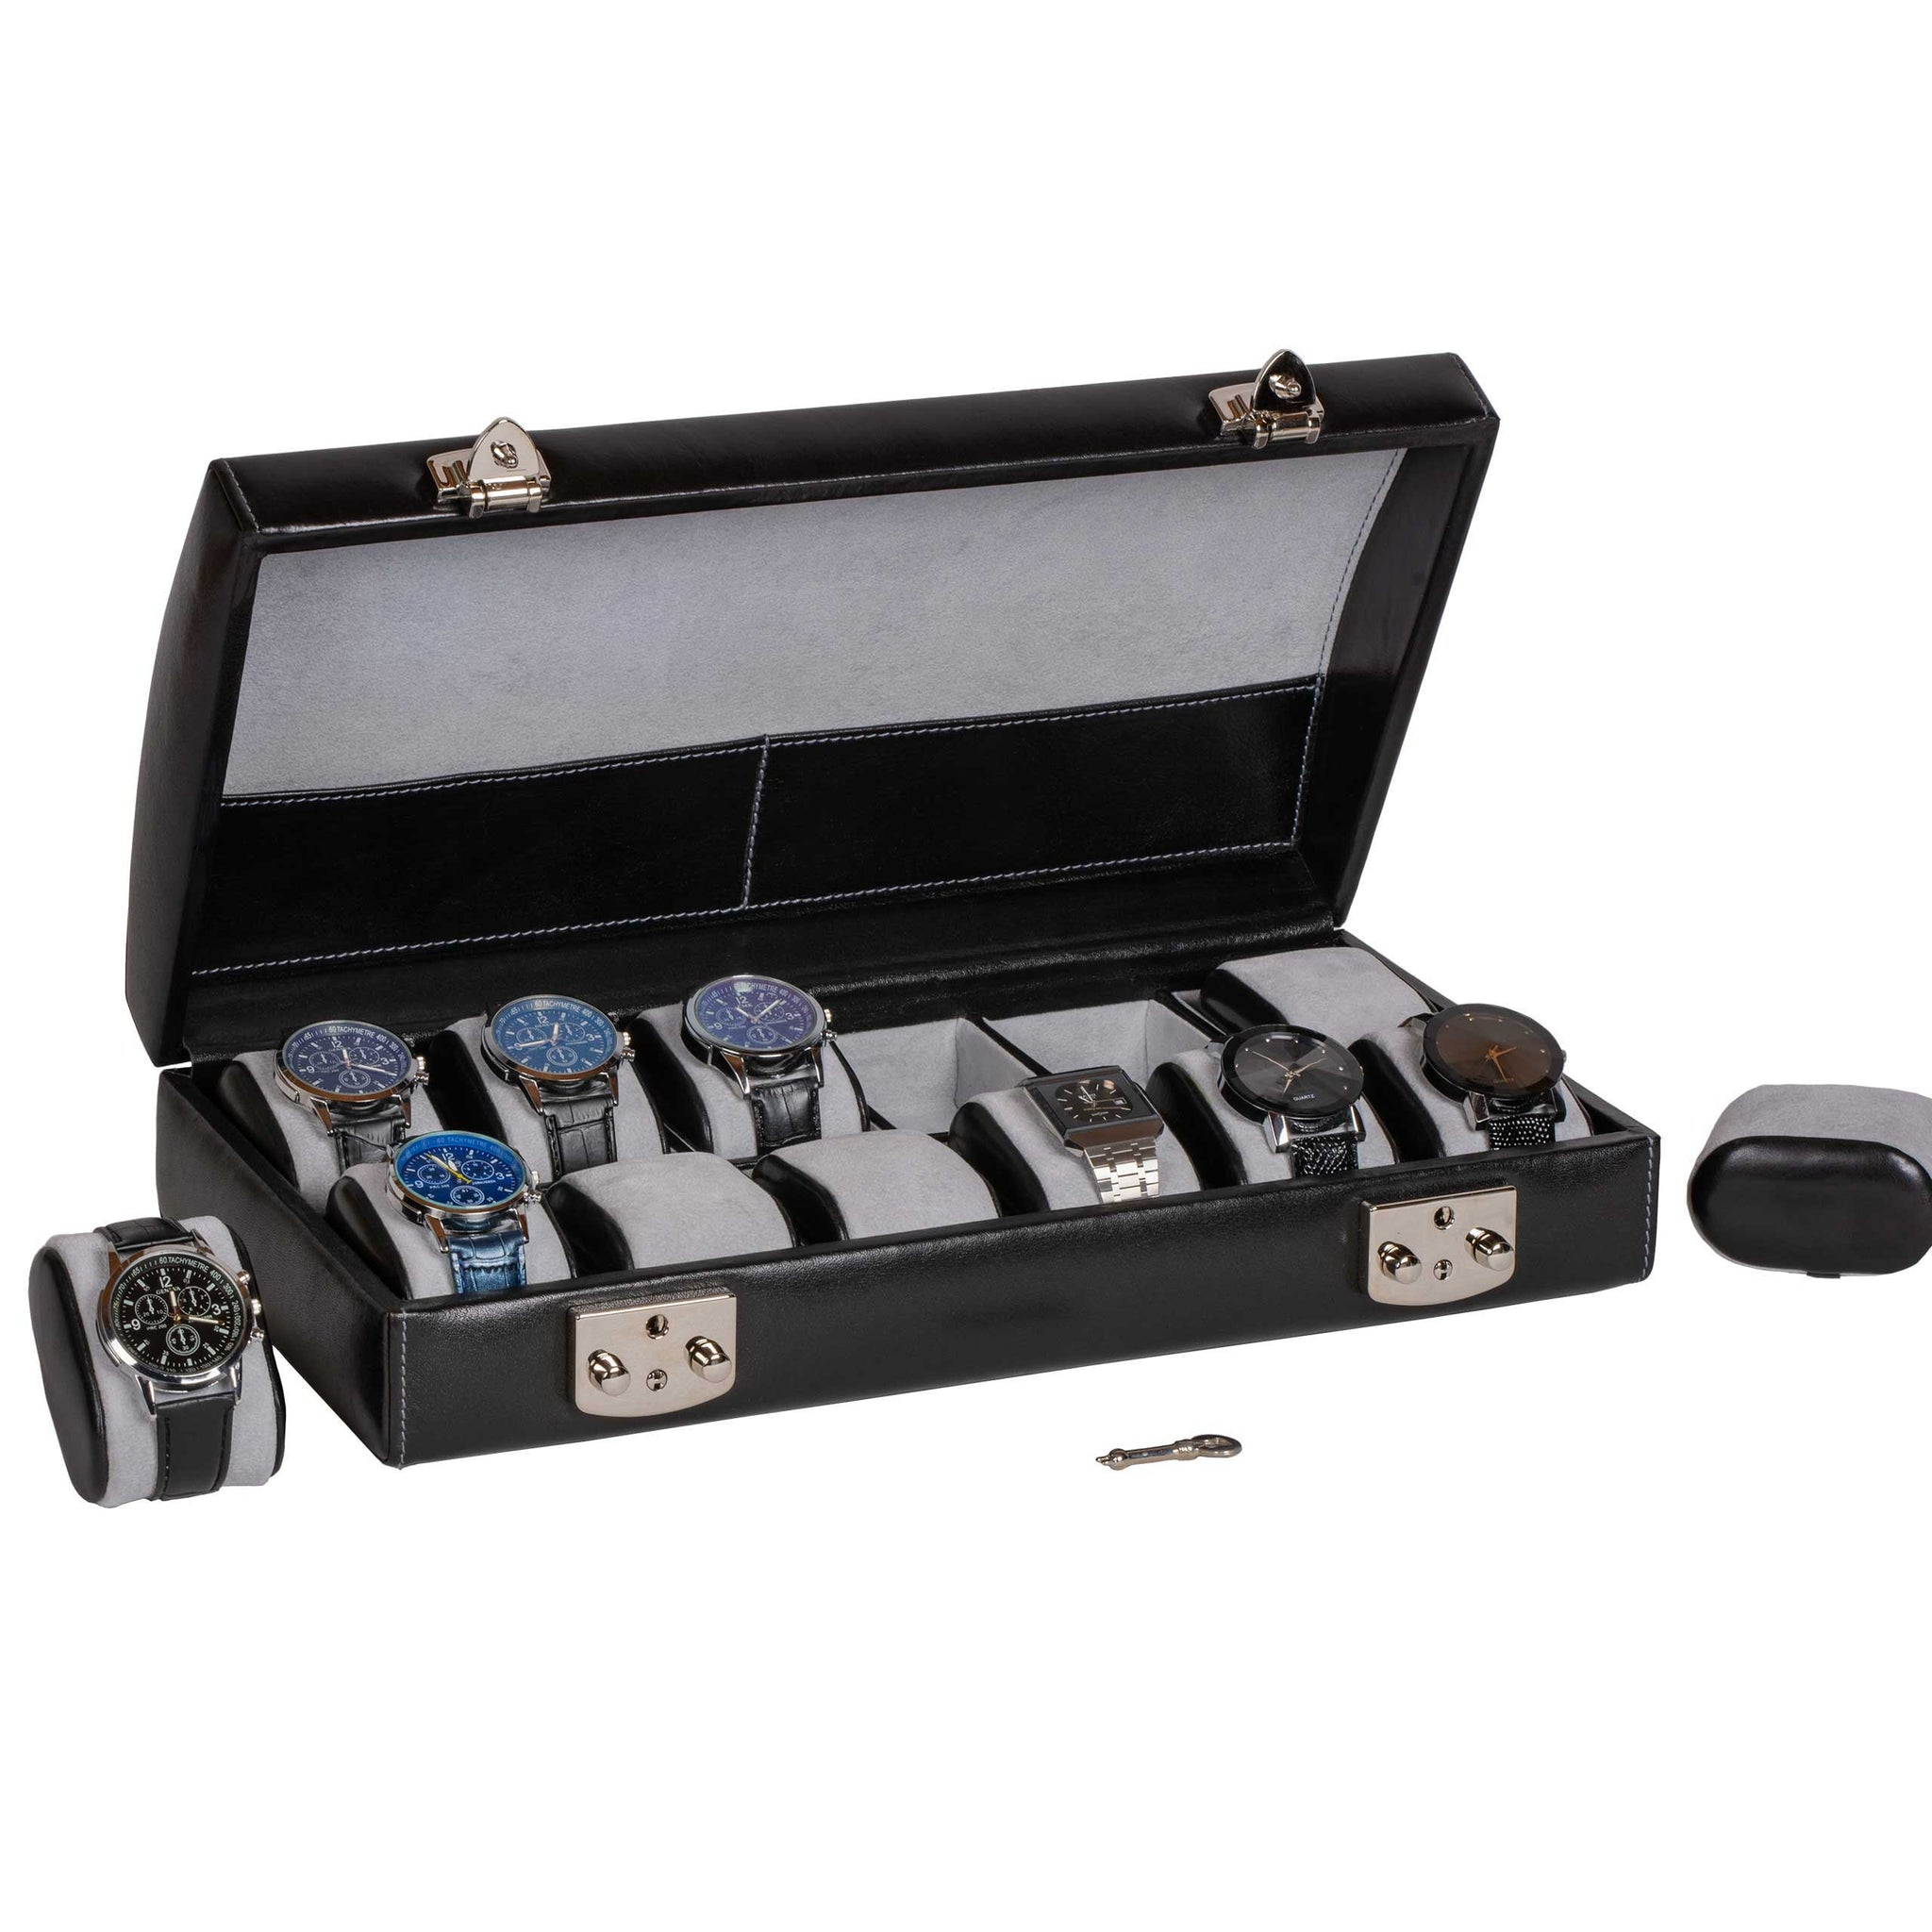 Italian Leather Watch Case Holds Twelve Men's Watches Midnight Black - Open View with Watch Pillows (watches not included)